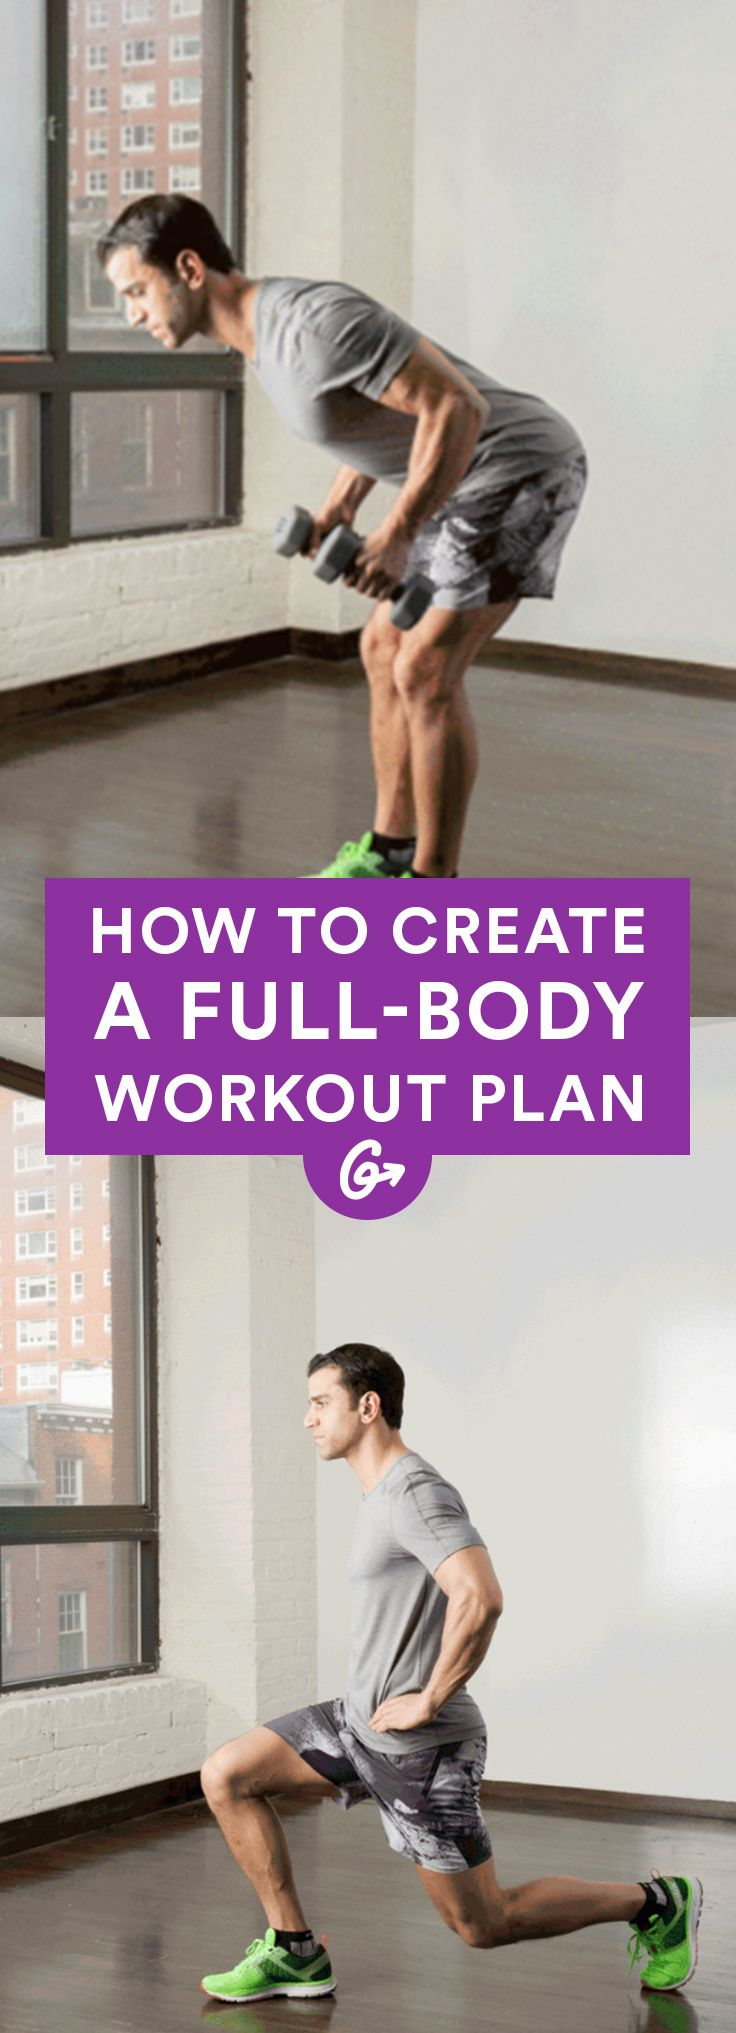 How To Create Your Own Full Body Workout Plan Fitness Workouts Pinterest Workout Plans